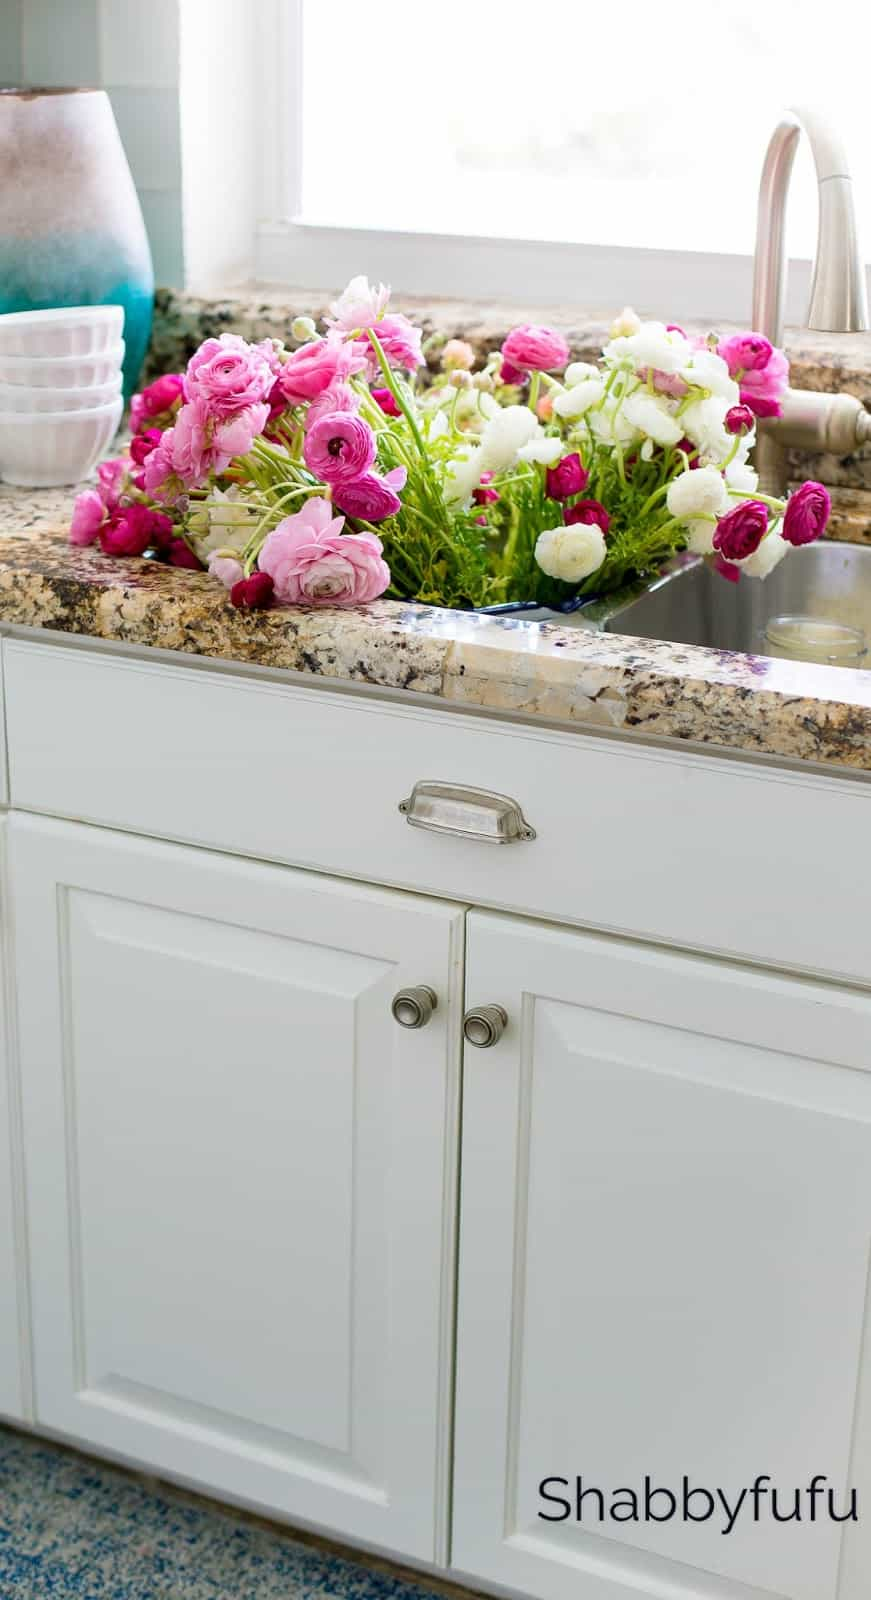 kitchen-sink-flowers-ranunculus-shabbyfufu